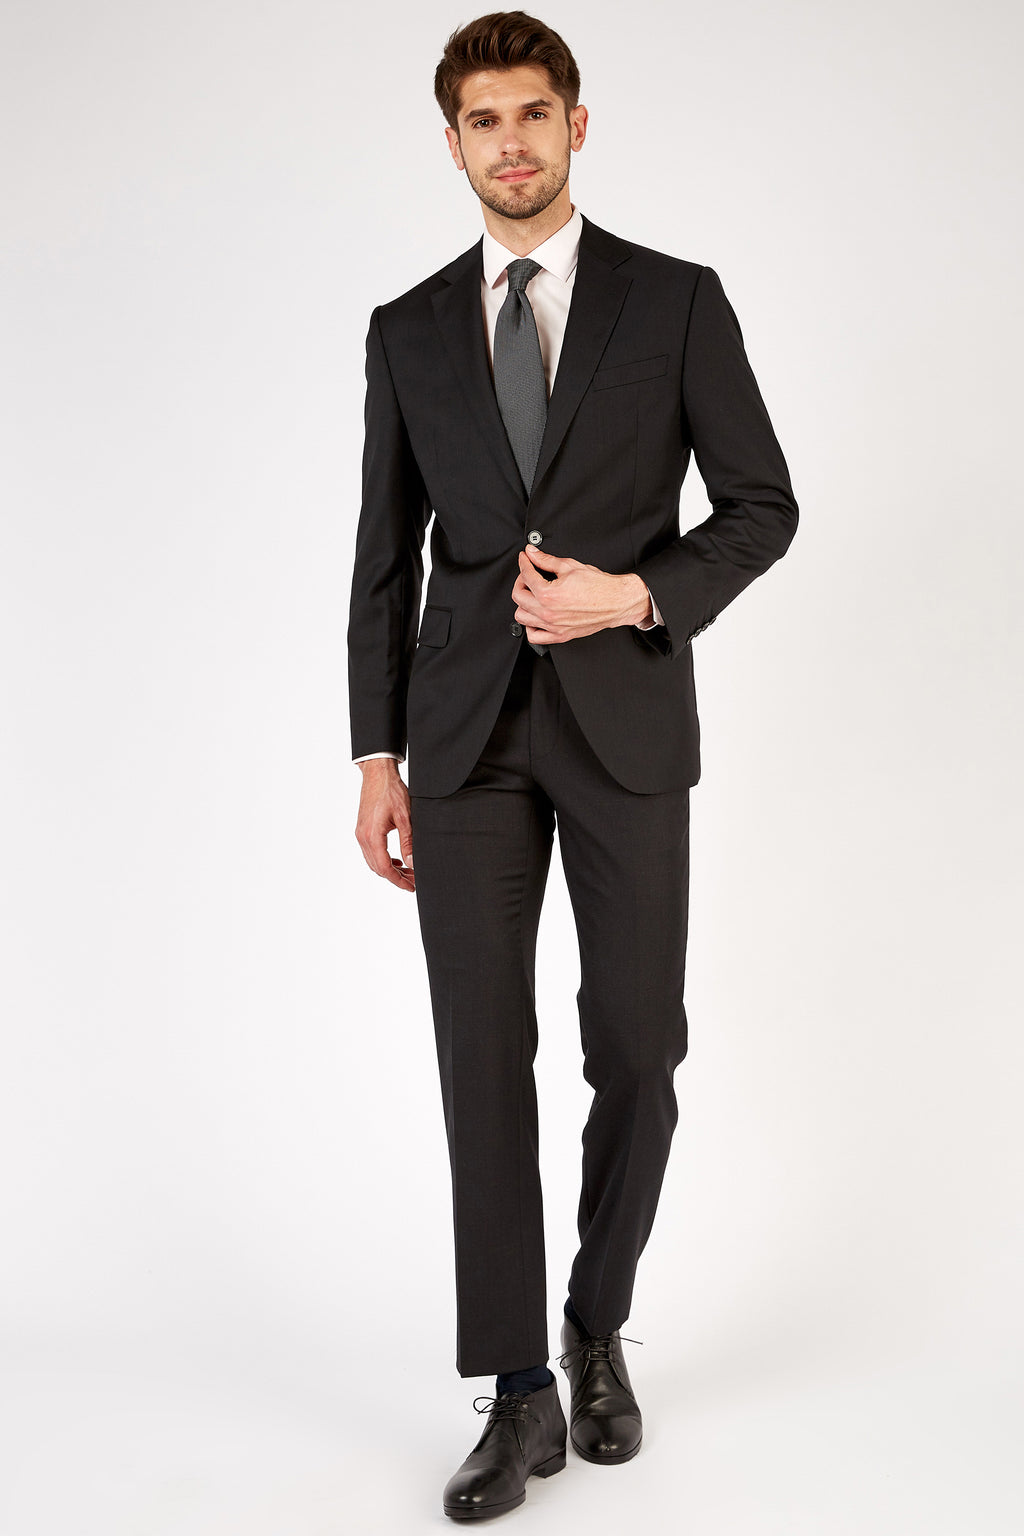 Romano Botta Classic Fit Two-Button Plain Coal Black Italian Suit